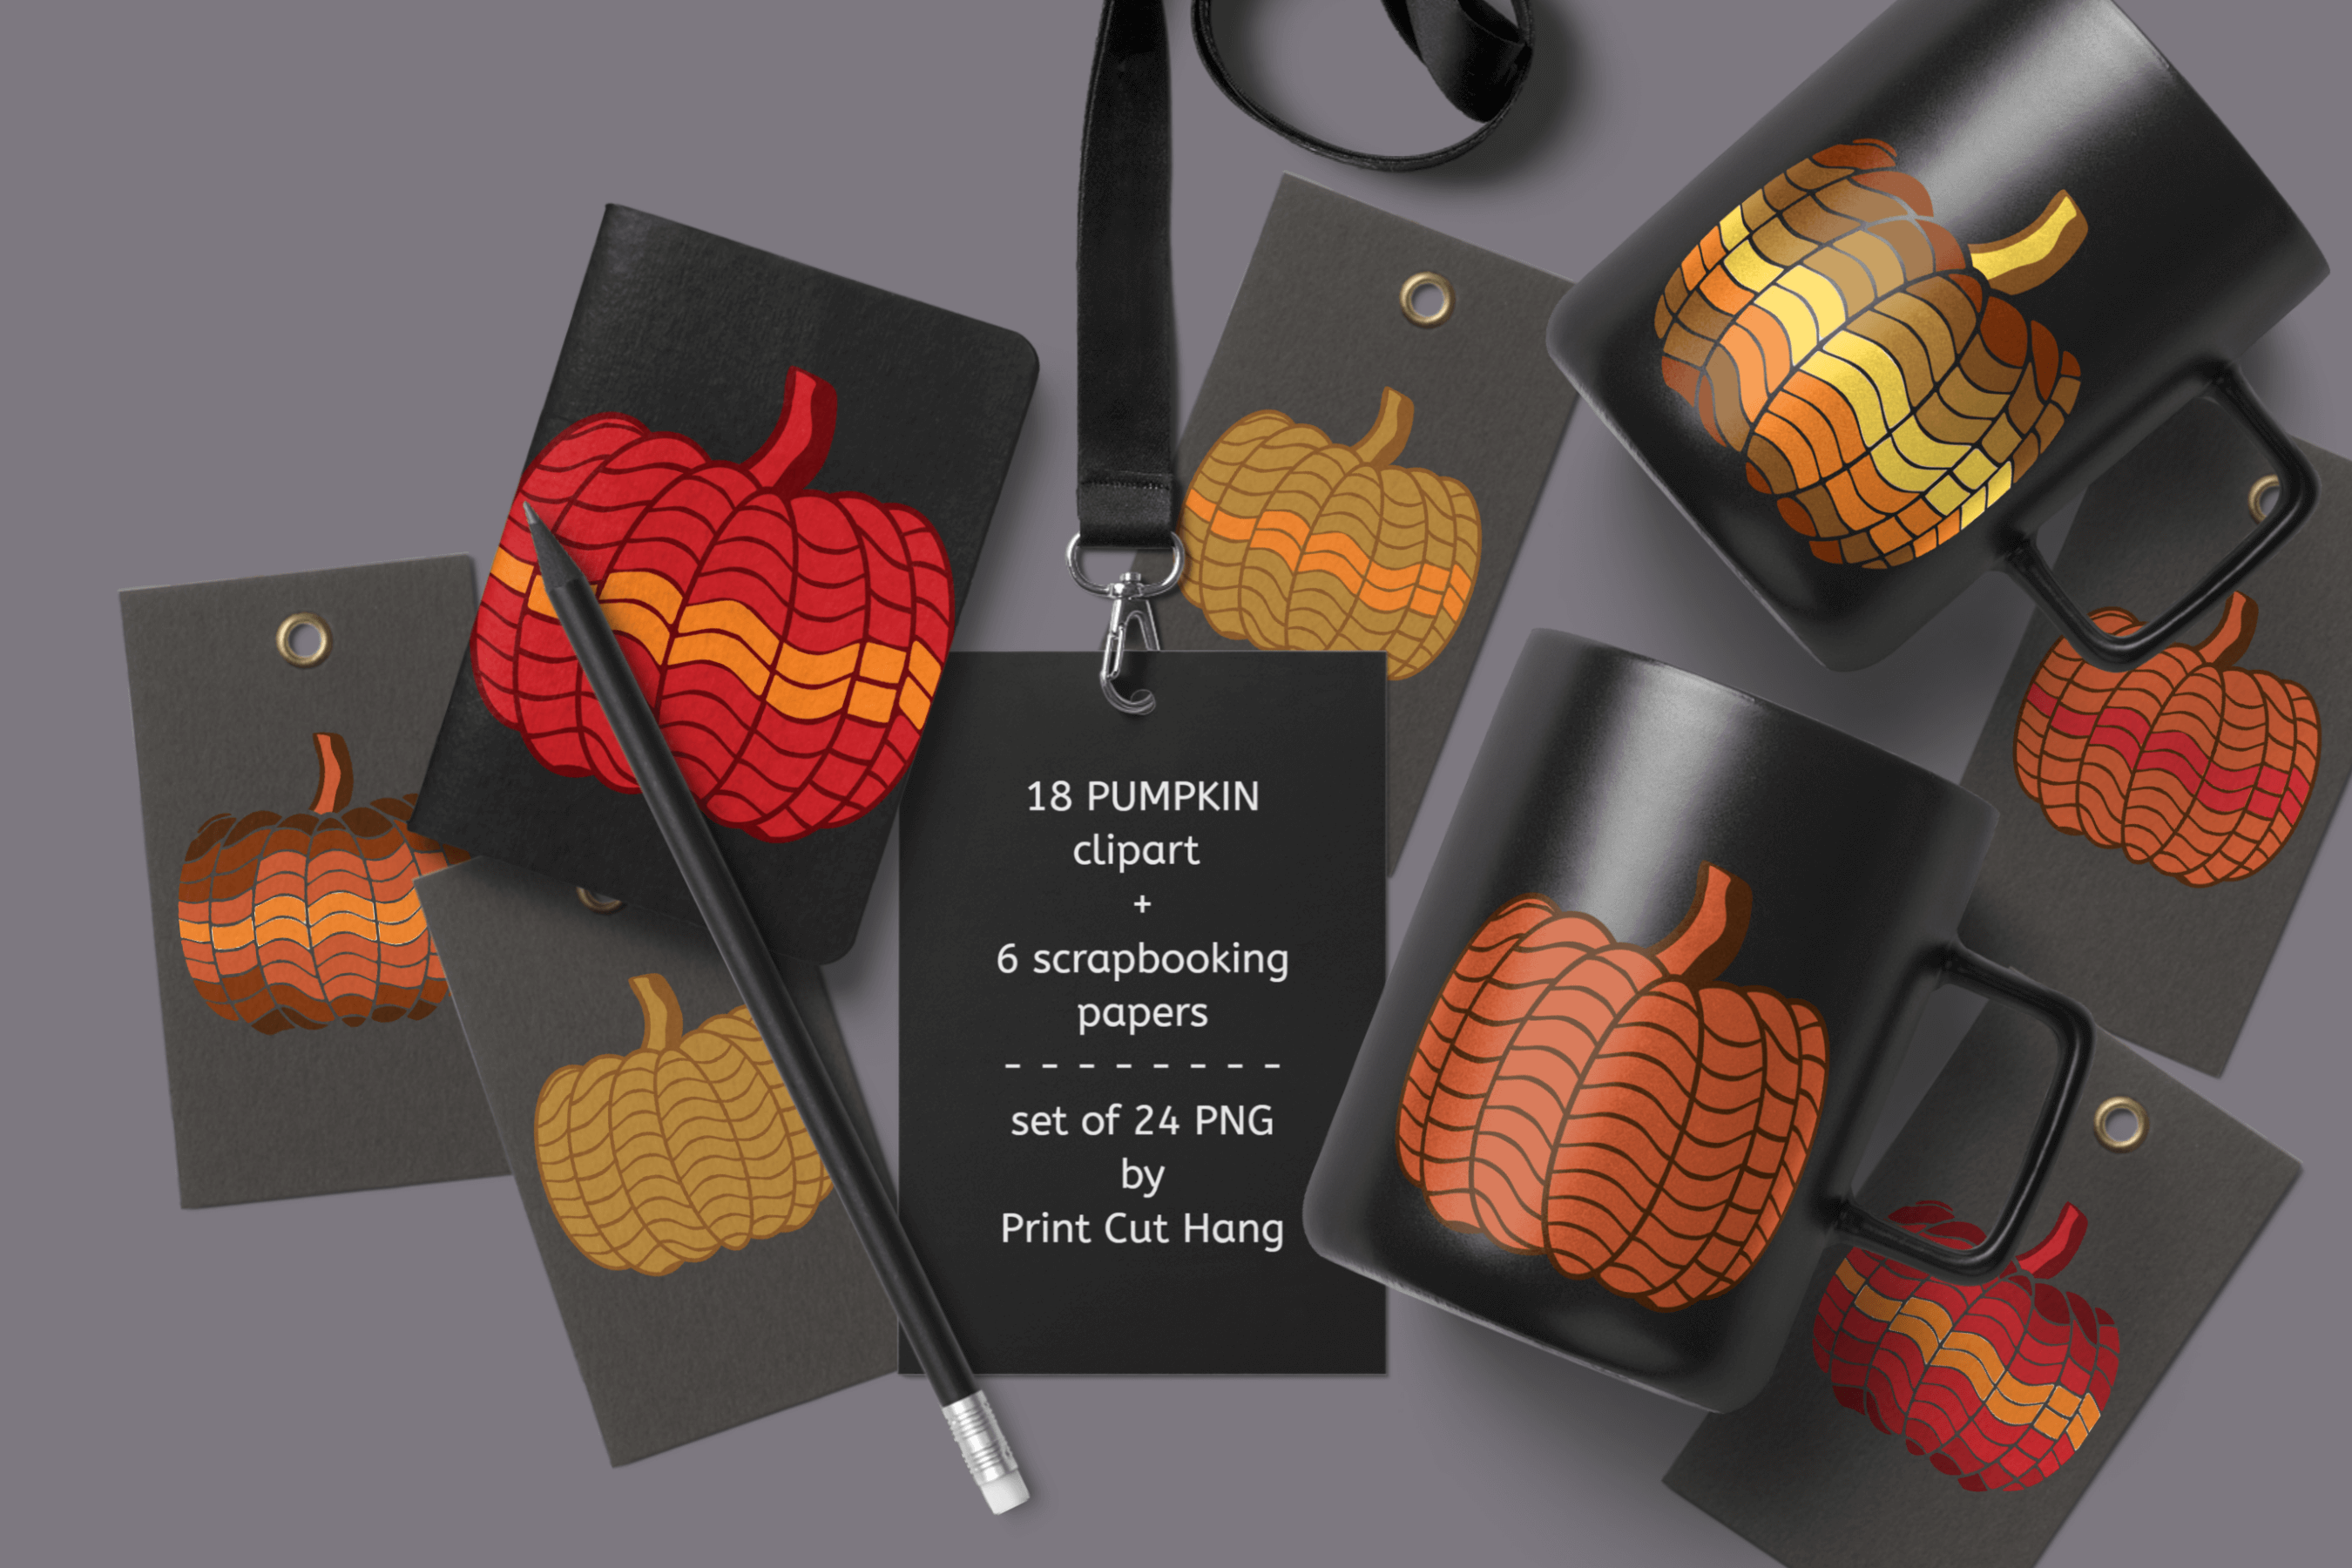 Pumpkins Clipart & Scrapbooking Papers Set of 24 PNG Files example image 3